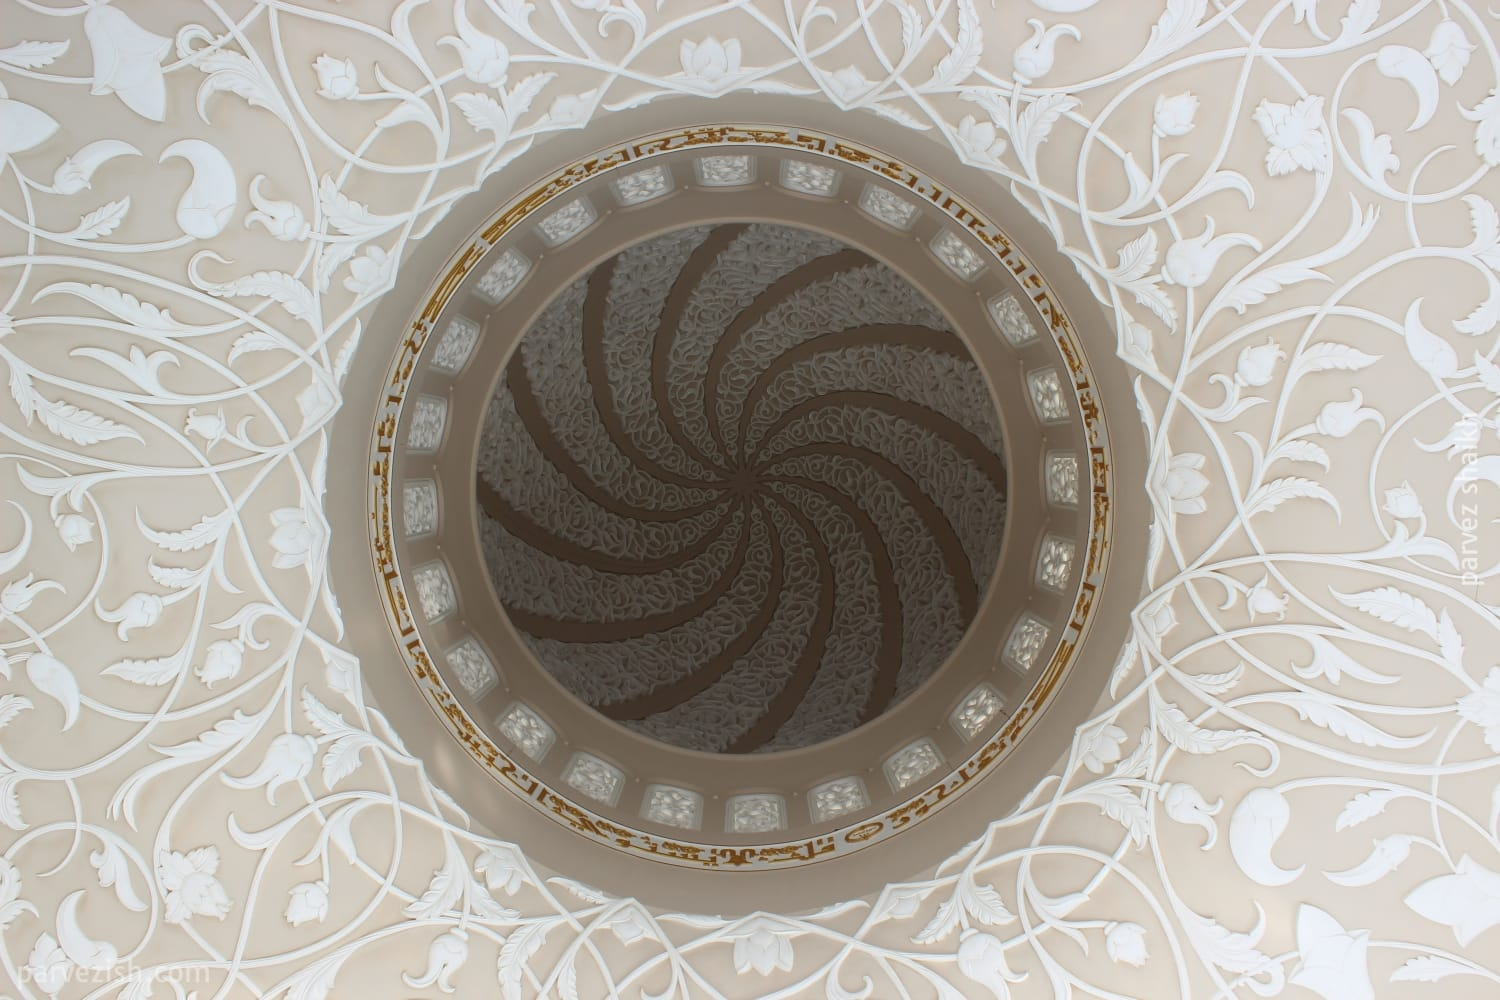 Inside a Dome of Abu Dhabi Grand Mosque